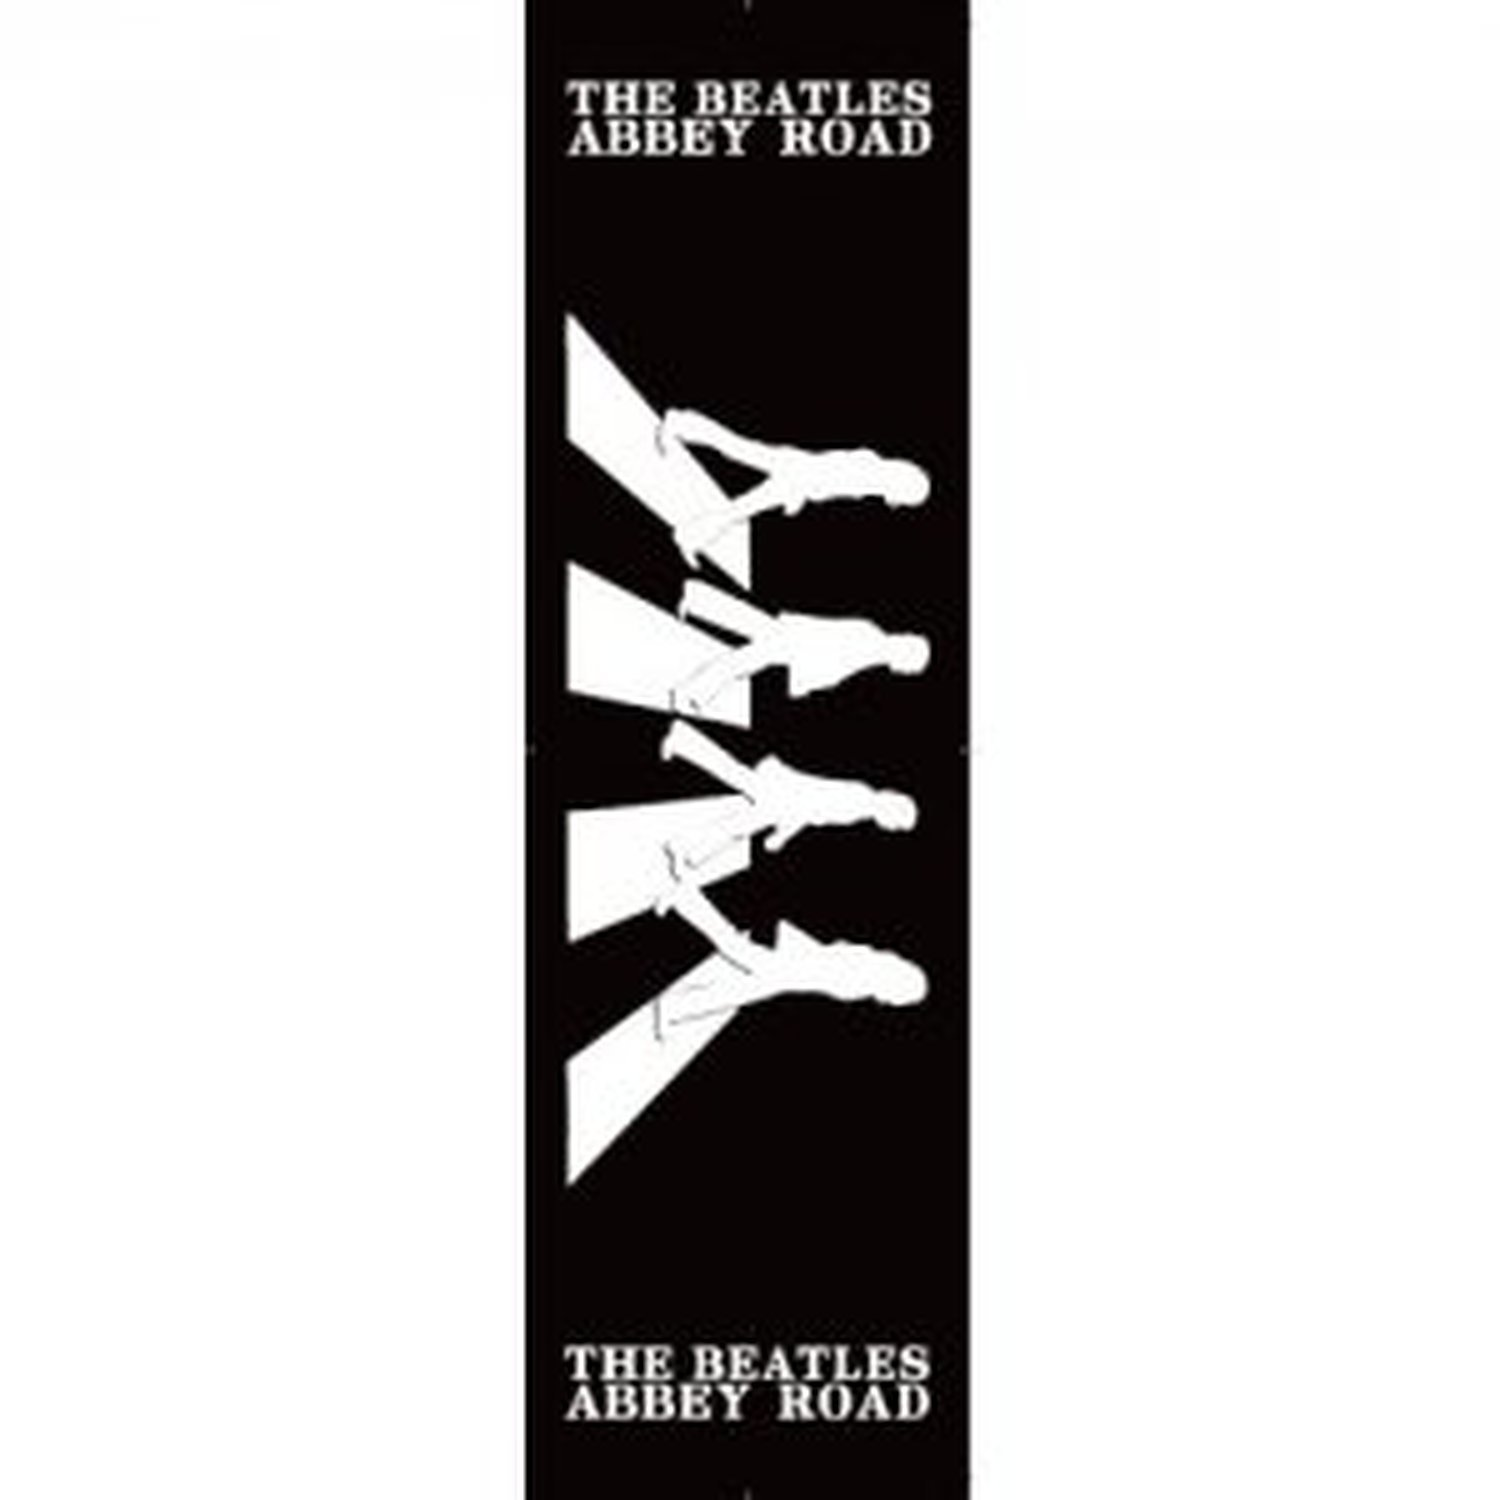 The beatles abbey road black and white silhouette album cover bookmark amazon ca home kitchen